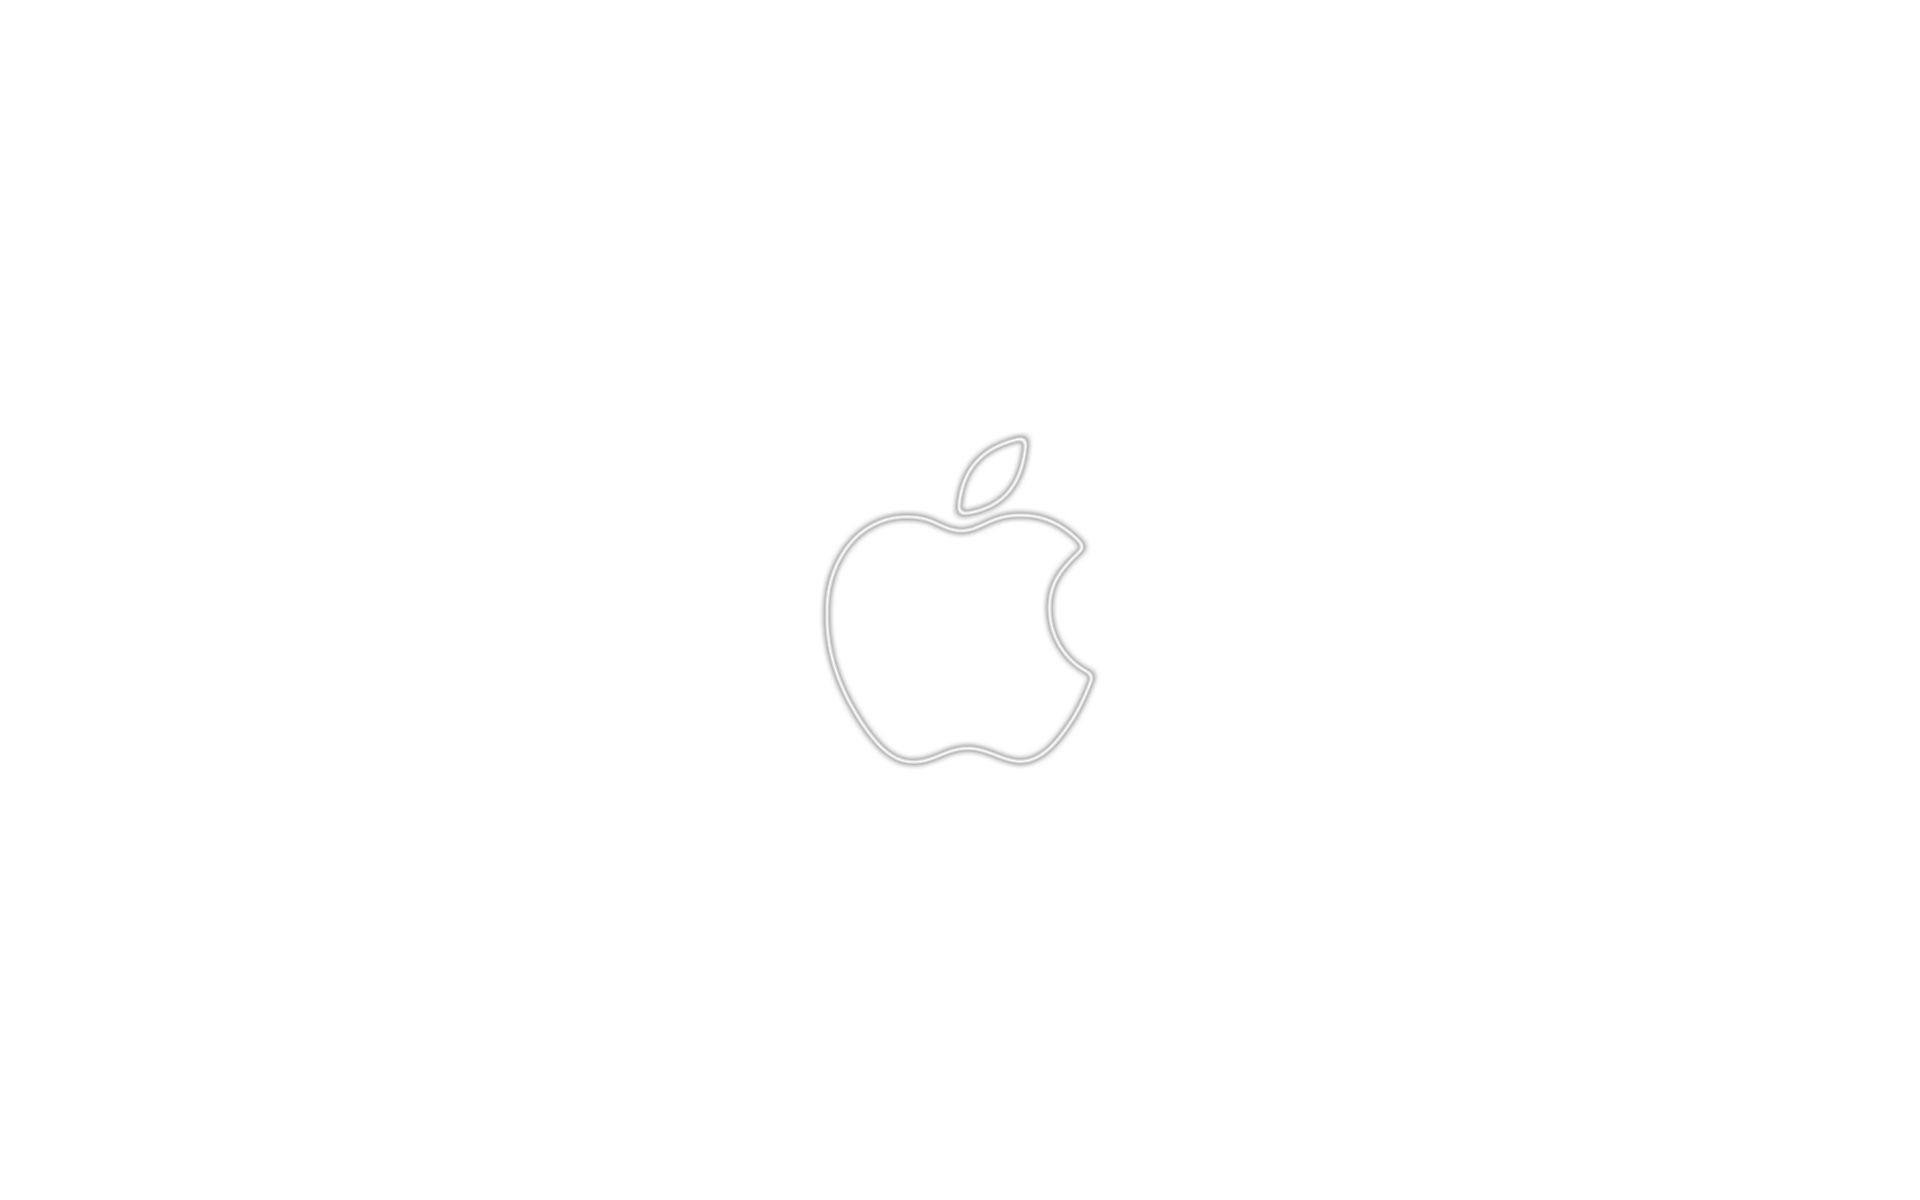 Wallpapers For Apple Background White